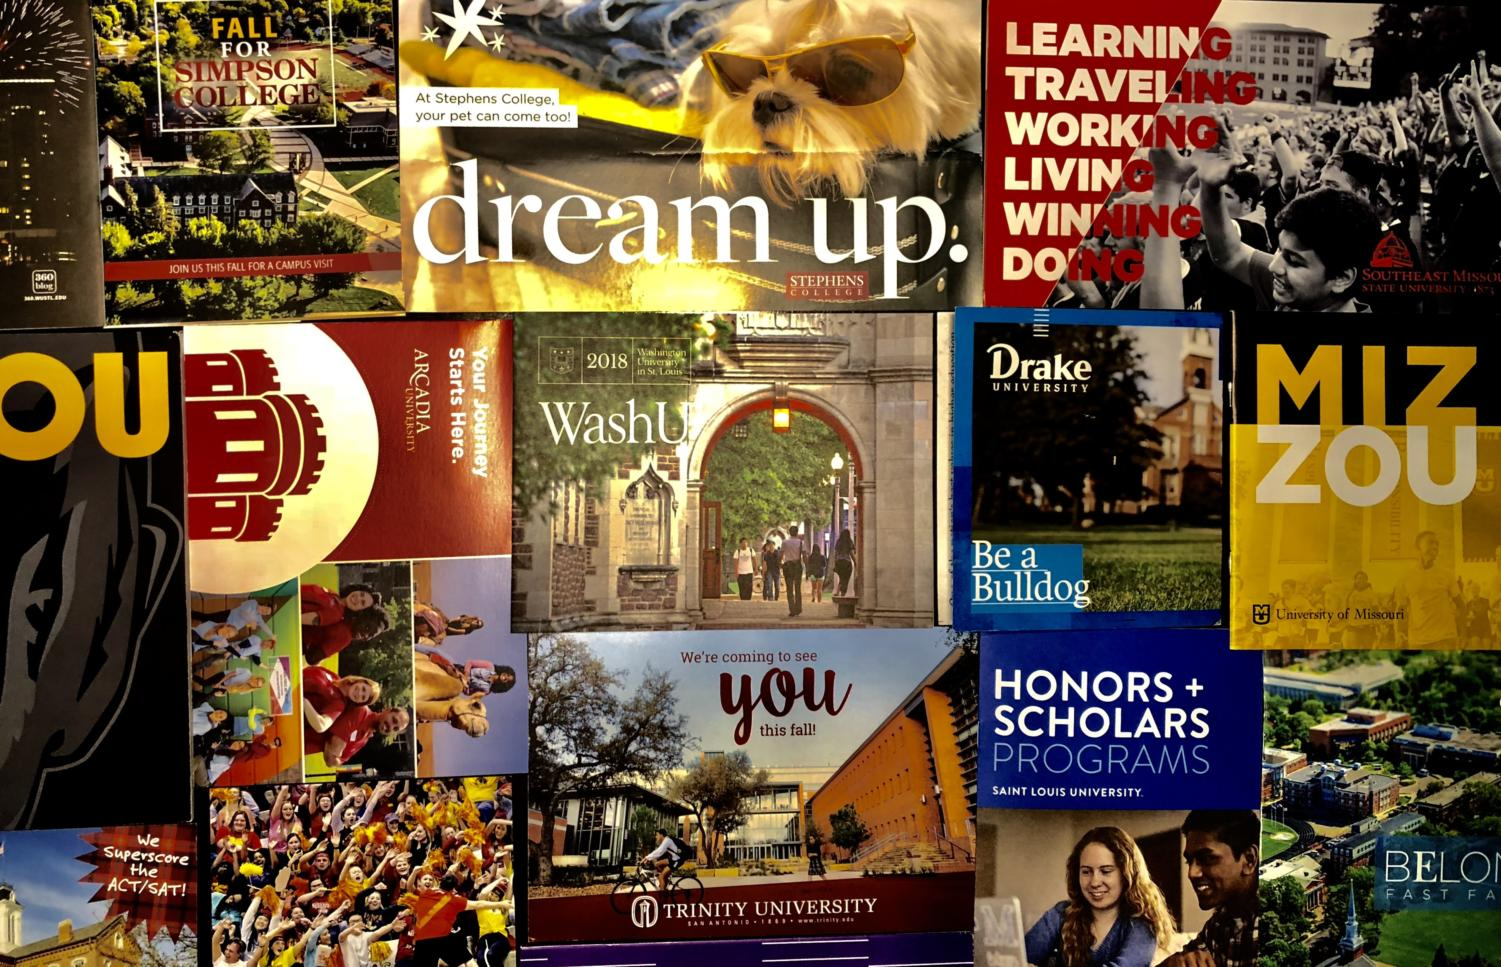 Colleges send letters and information to get students interested and informed about their college.